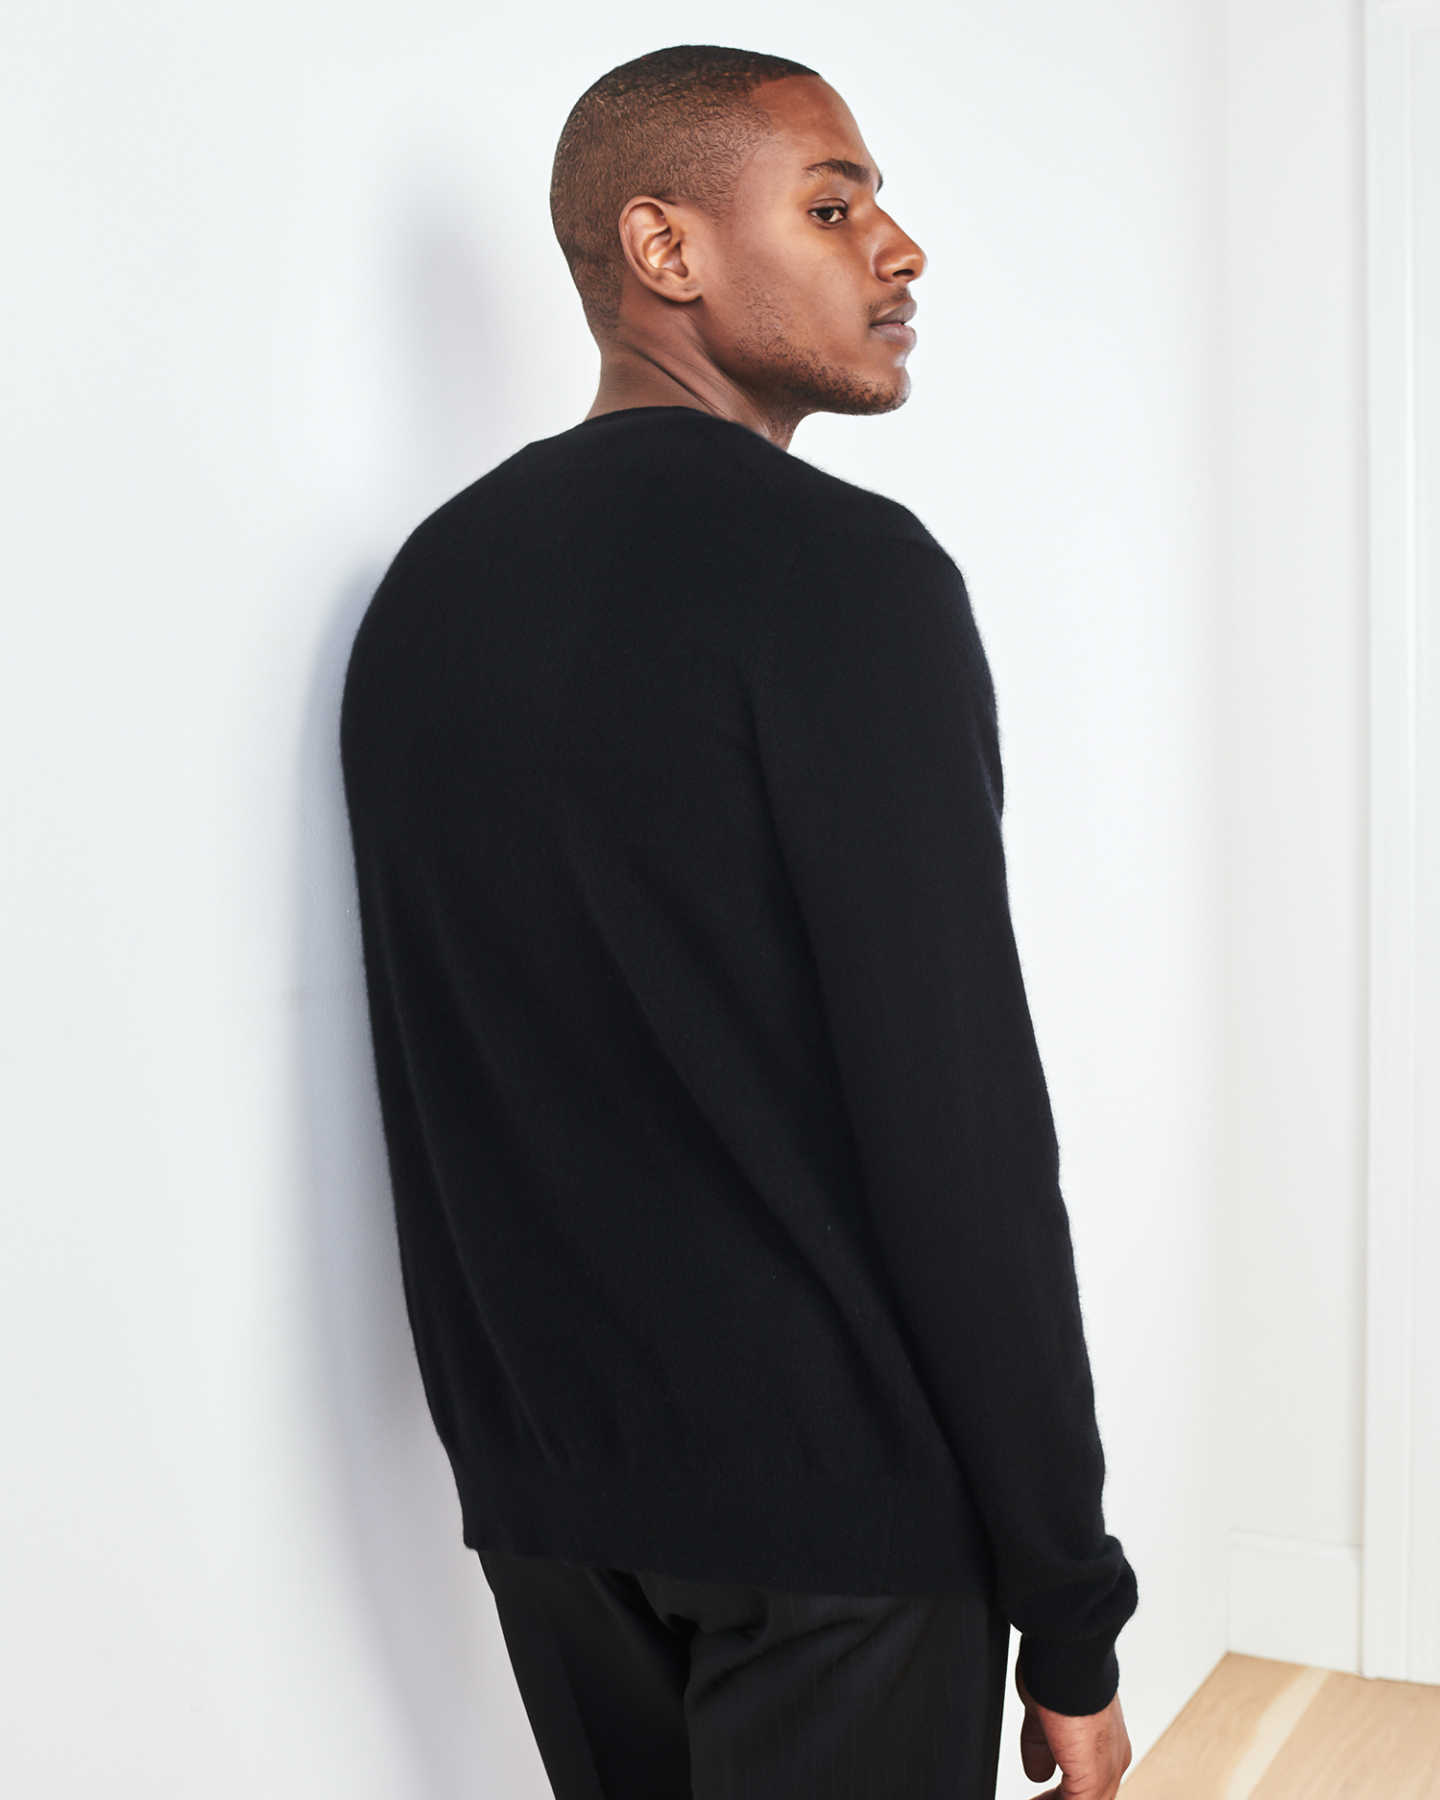 Men's cashmere cardigan sweater in black against wall